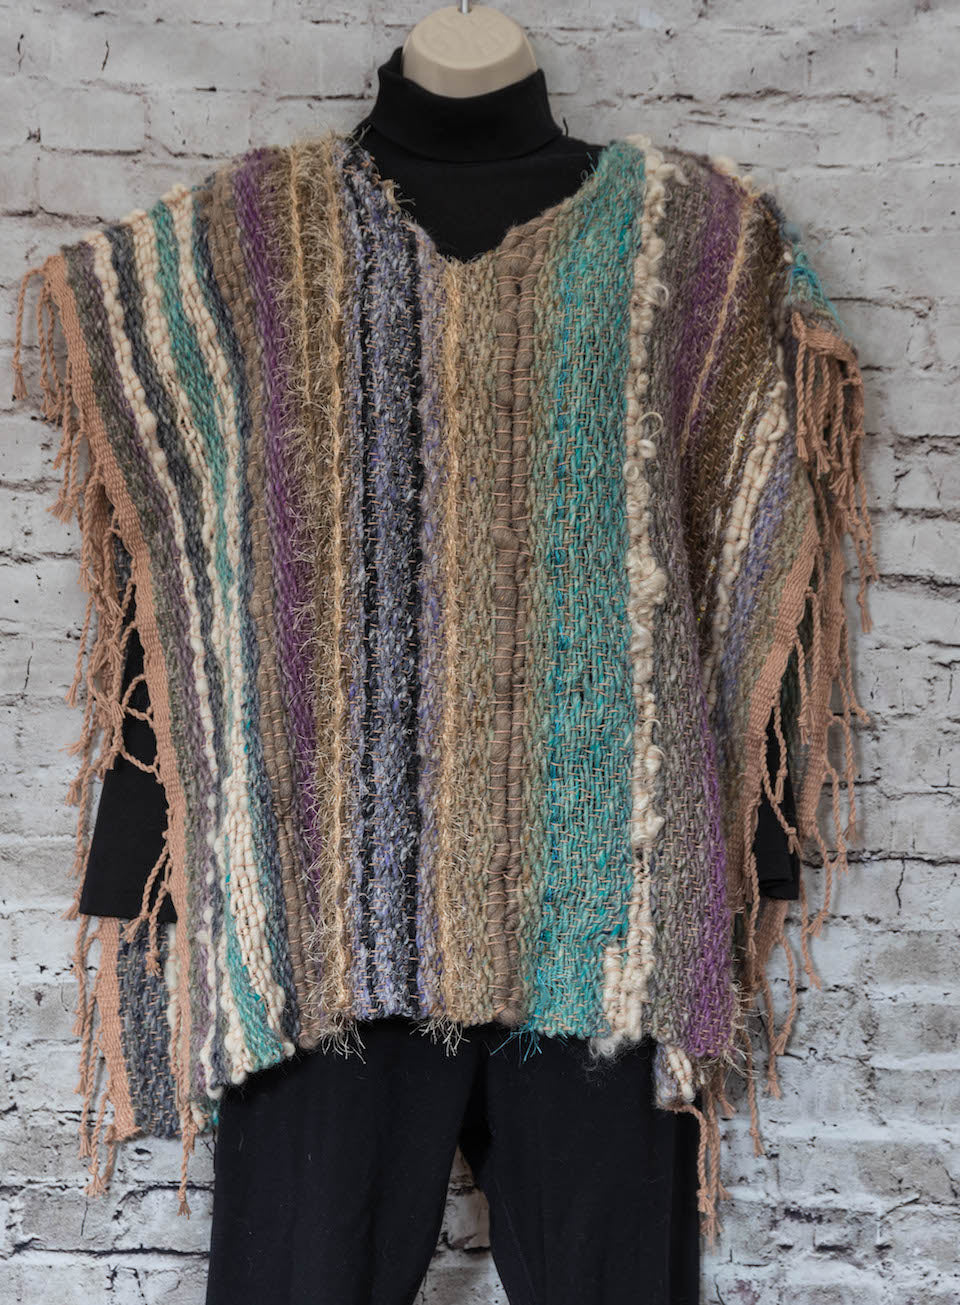 Handwoven Poncho - One Size - Wool